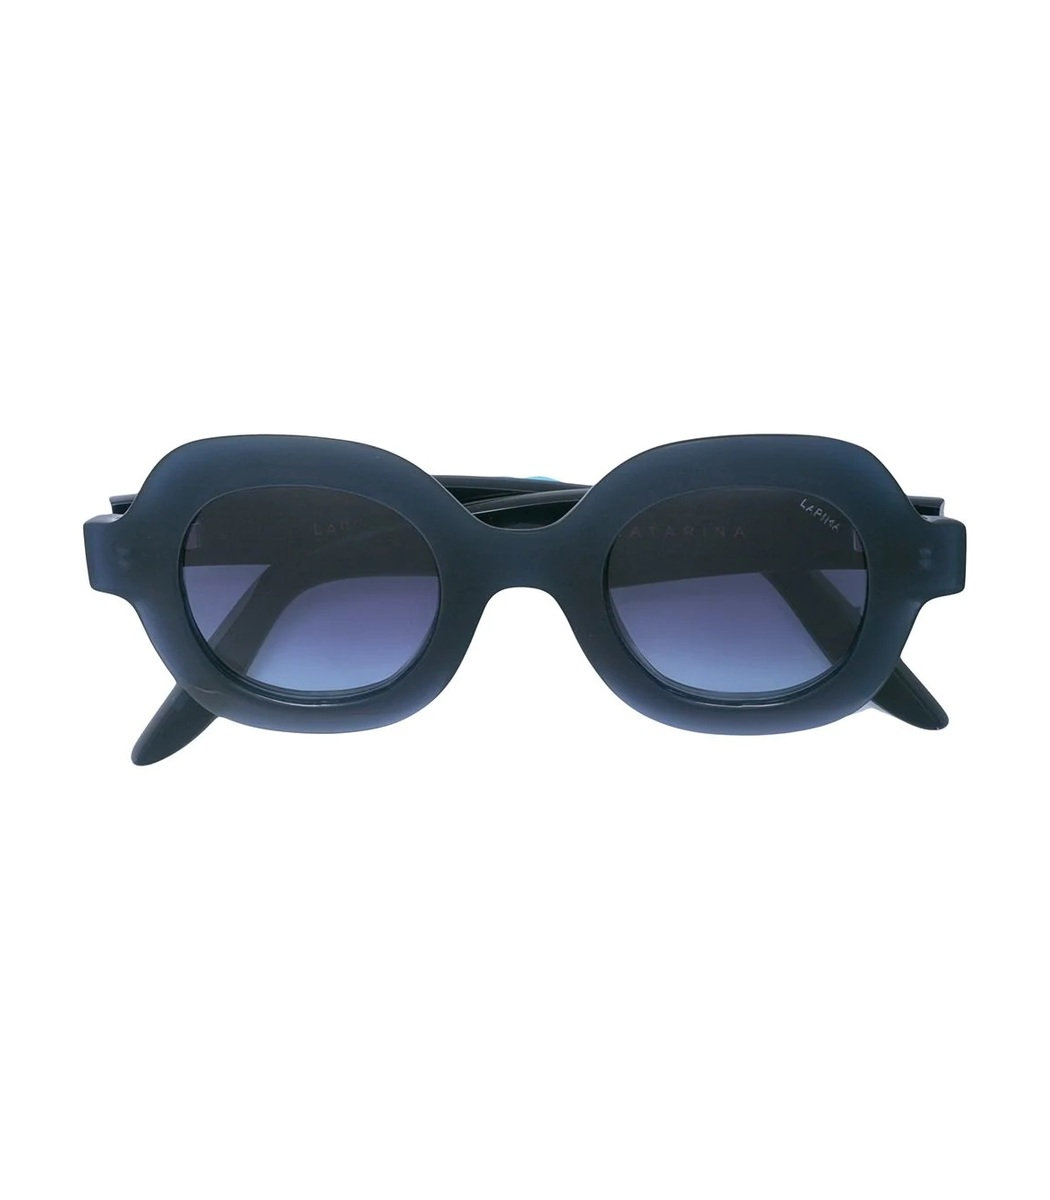 2503dc5029 Lapima Catarina Sunglasses In Blue Black